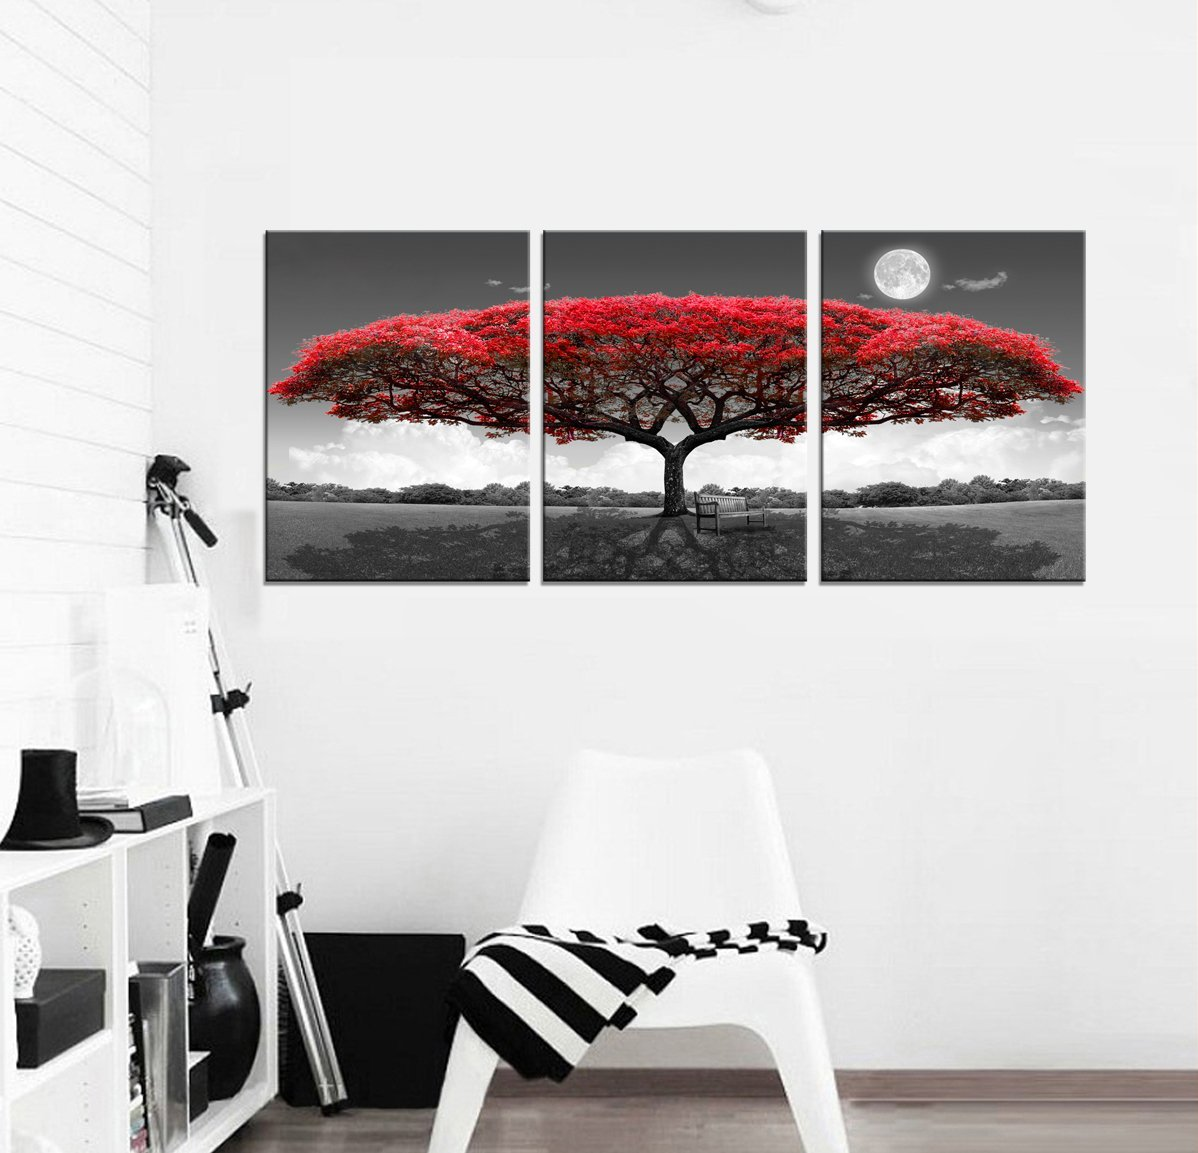 youkuart 3 Panel wall art red tree For Living Room Decor And Modern Home Decorations Photo Prints 12x16inchx3(Wood Framed) (12inchx16inchx3pcs, red tree)